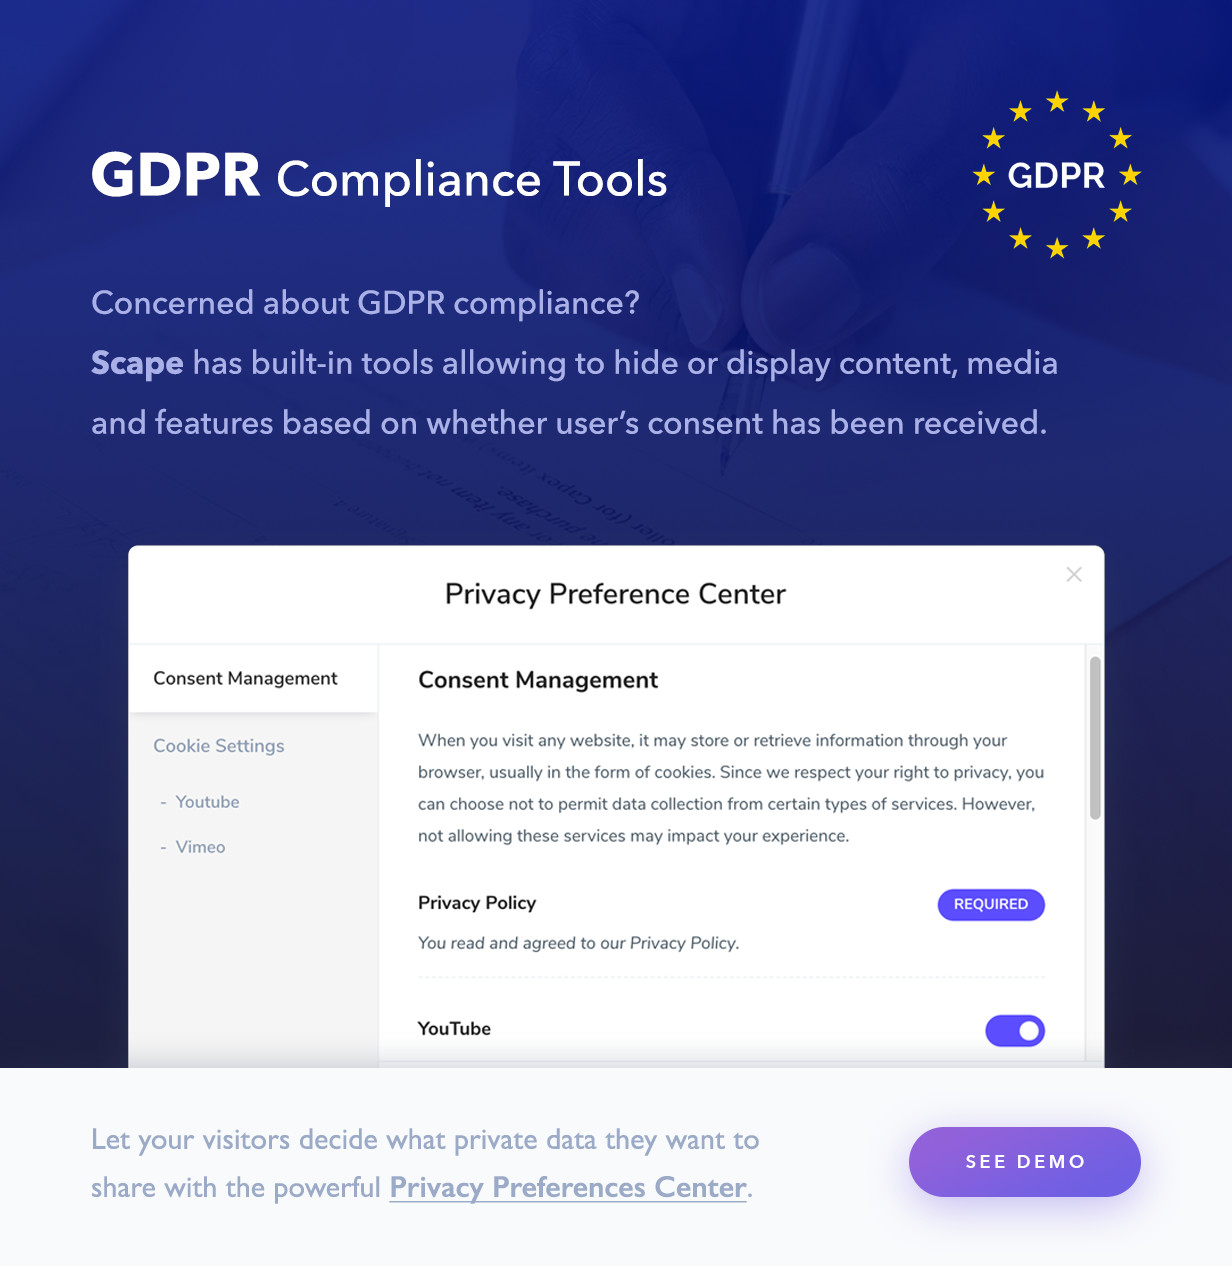 GDPR compliance tools